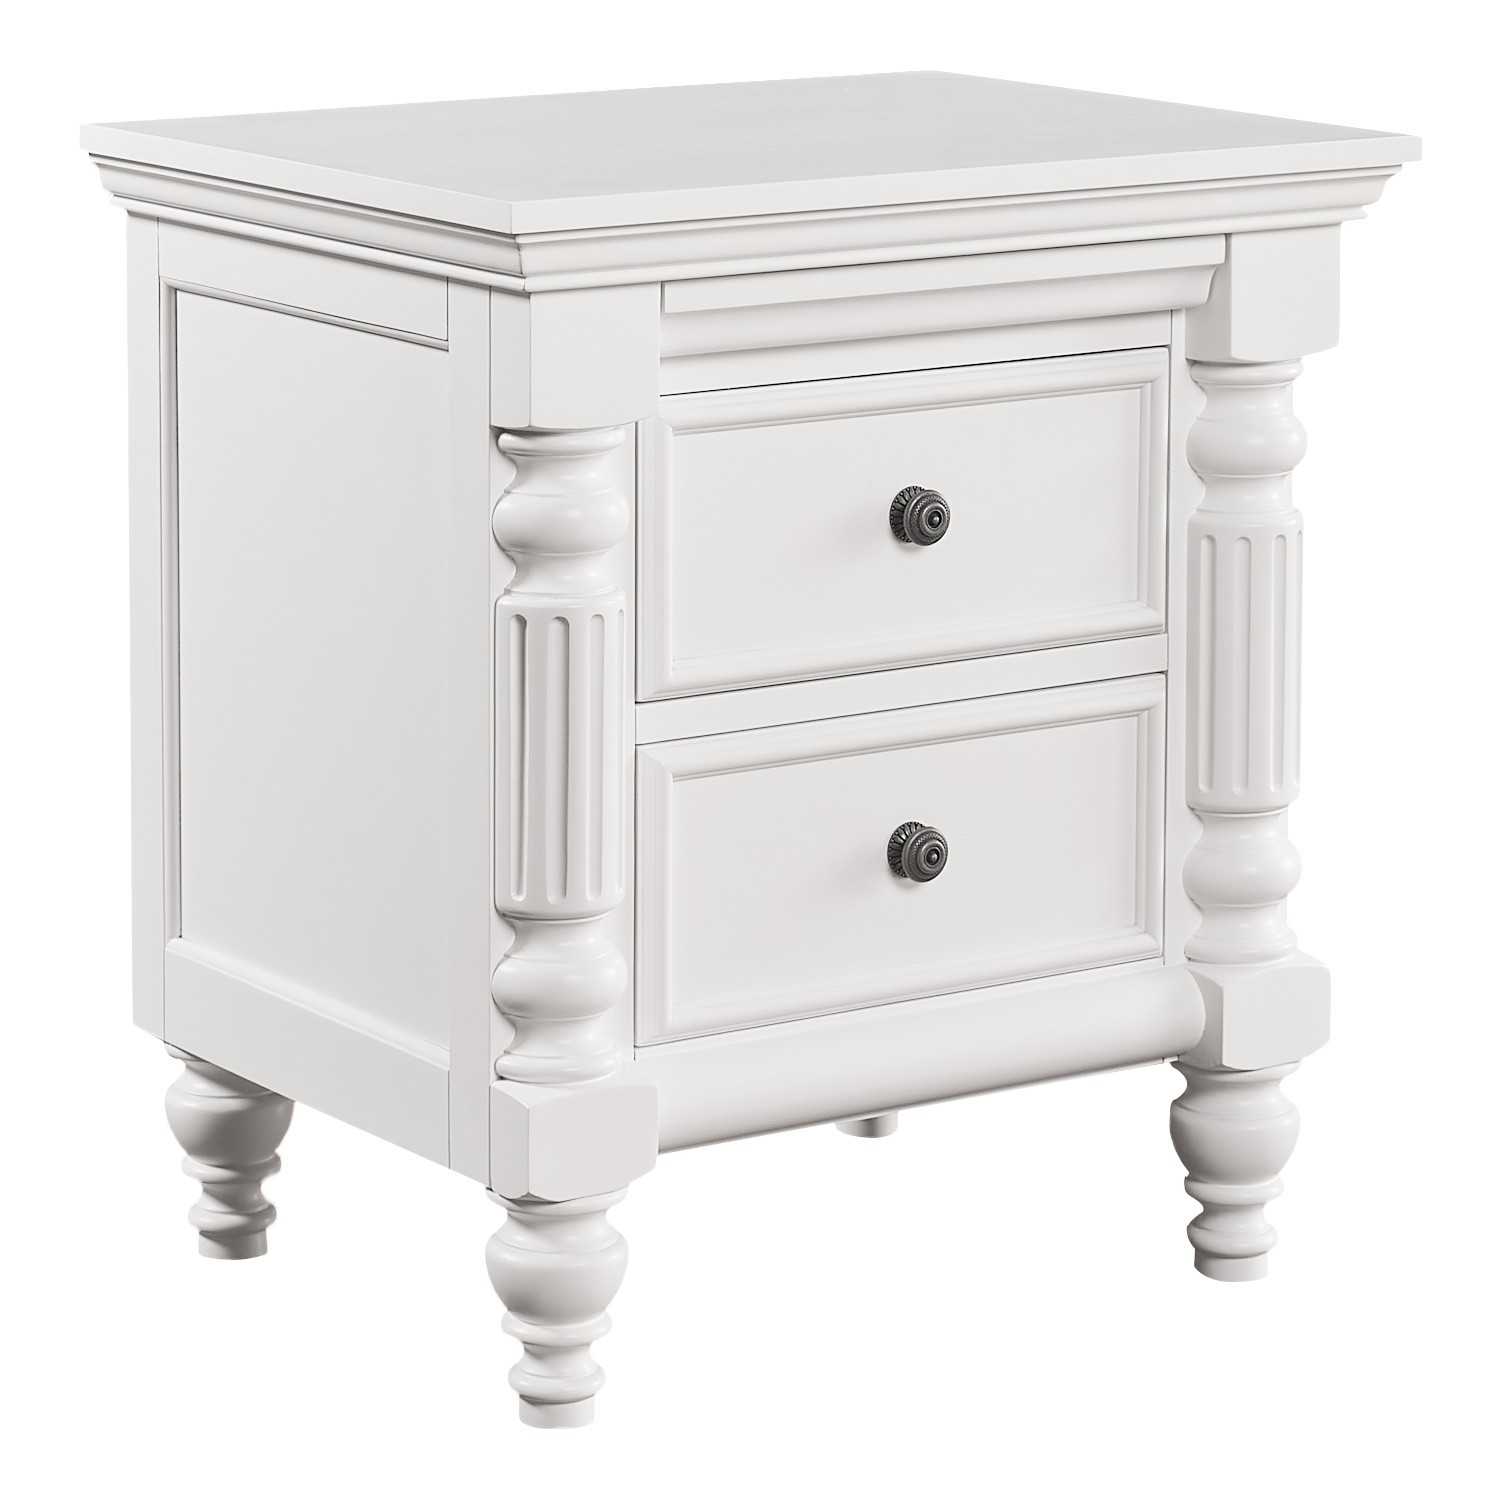 Fitzroy Poplar Timber Bedside Table, White